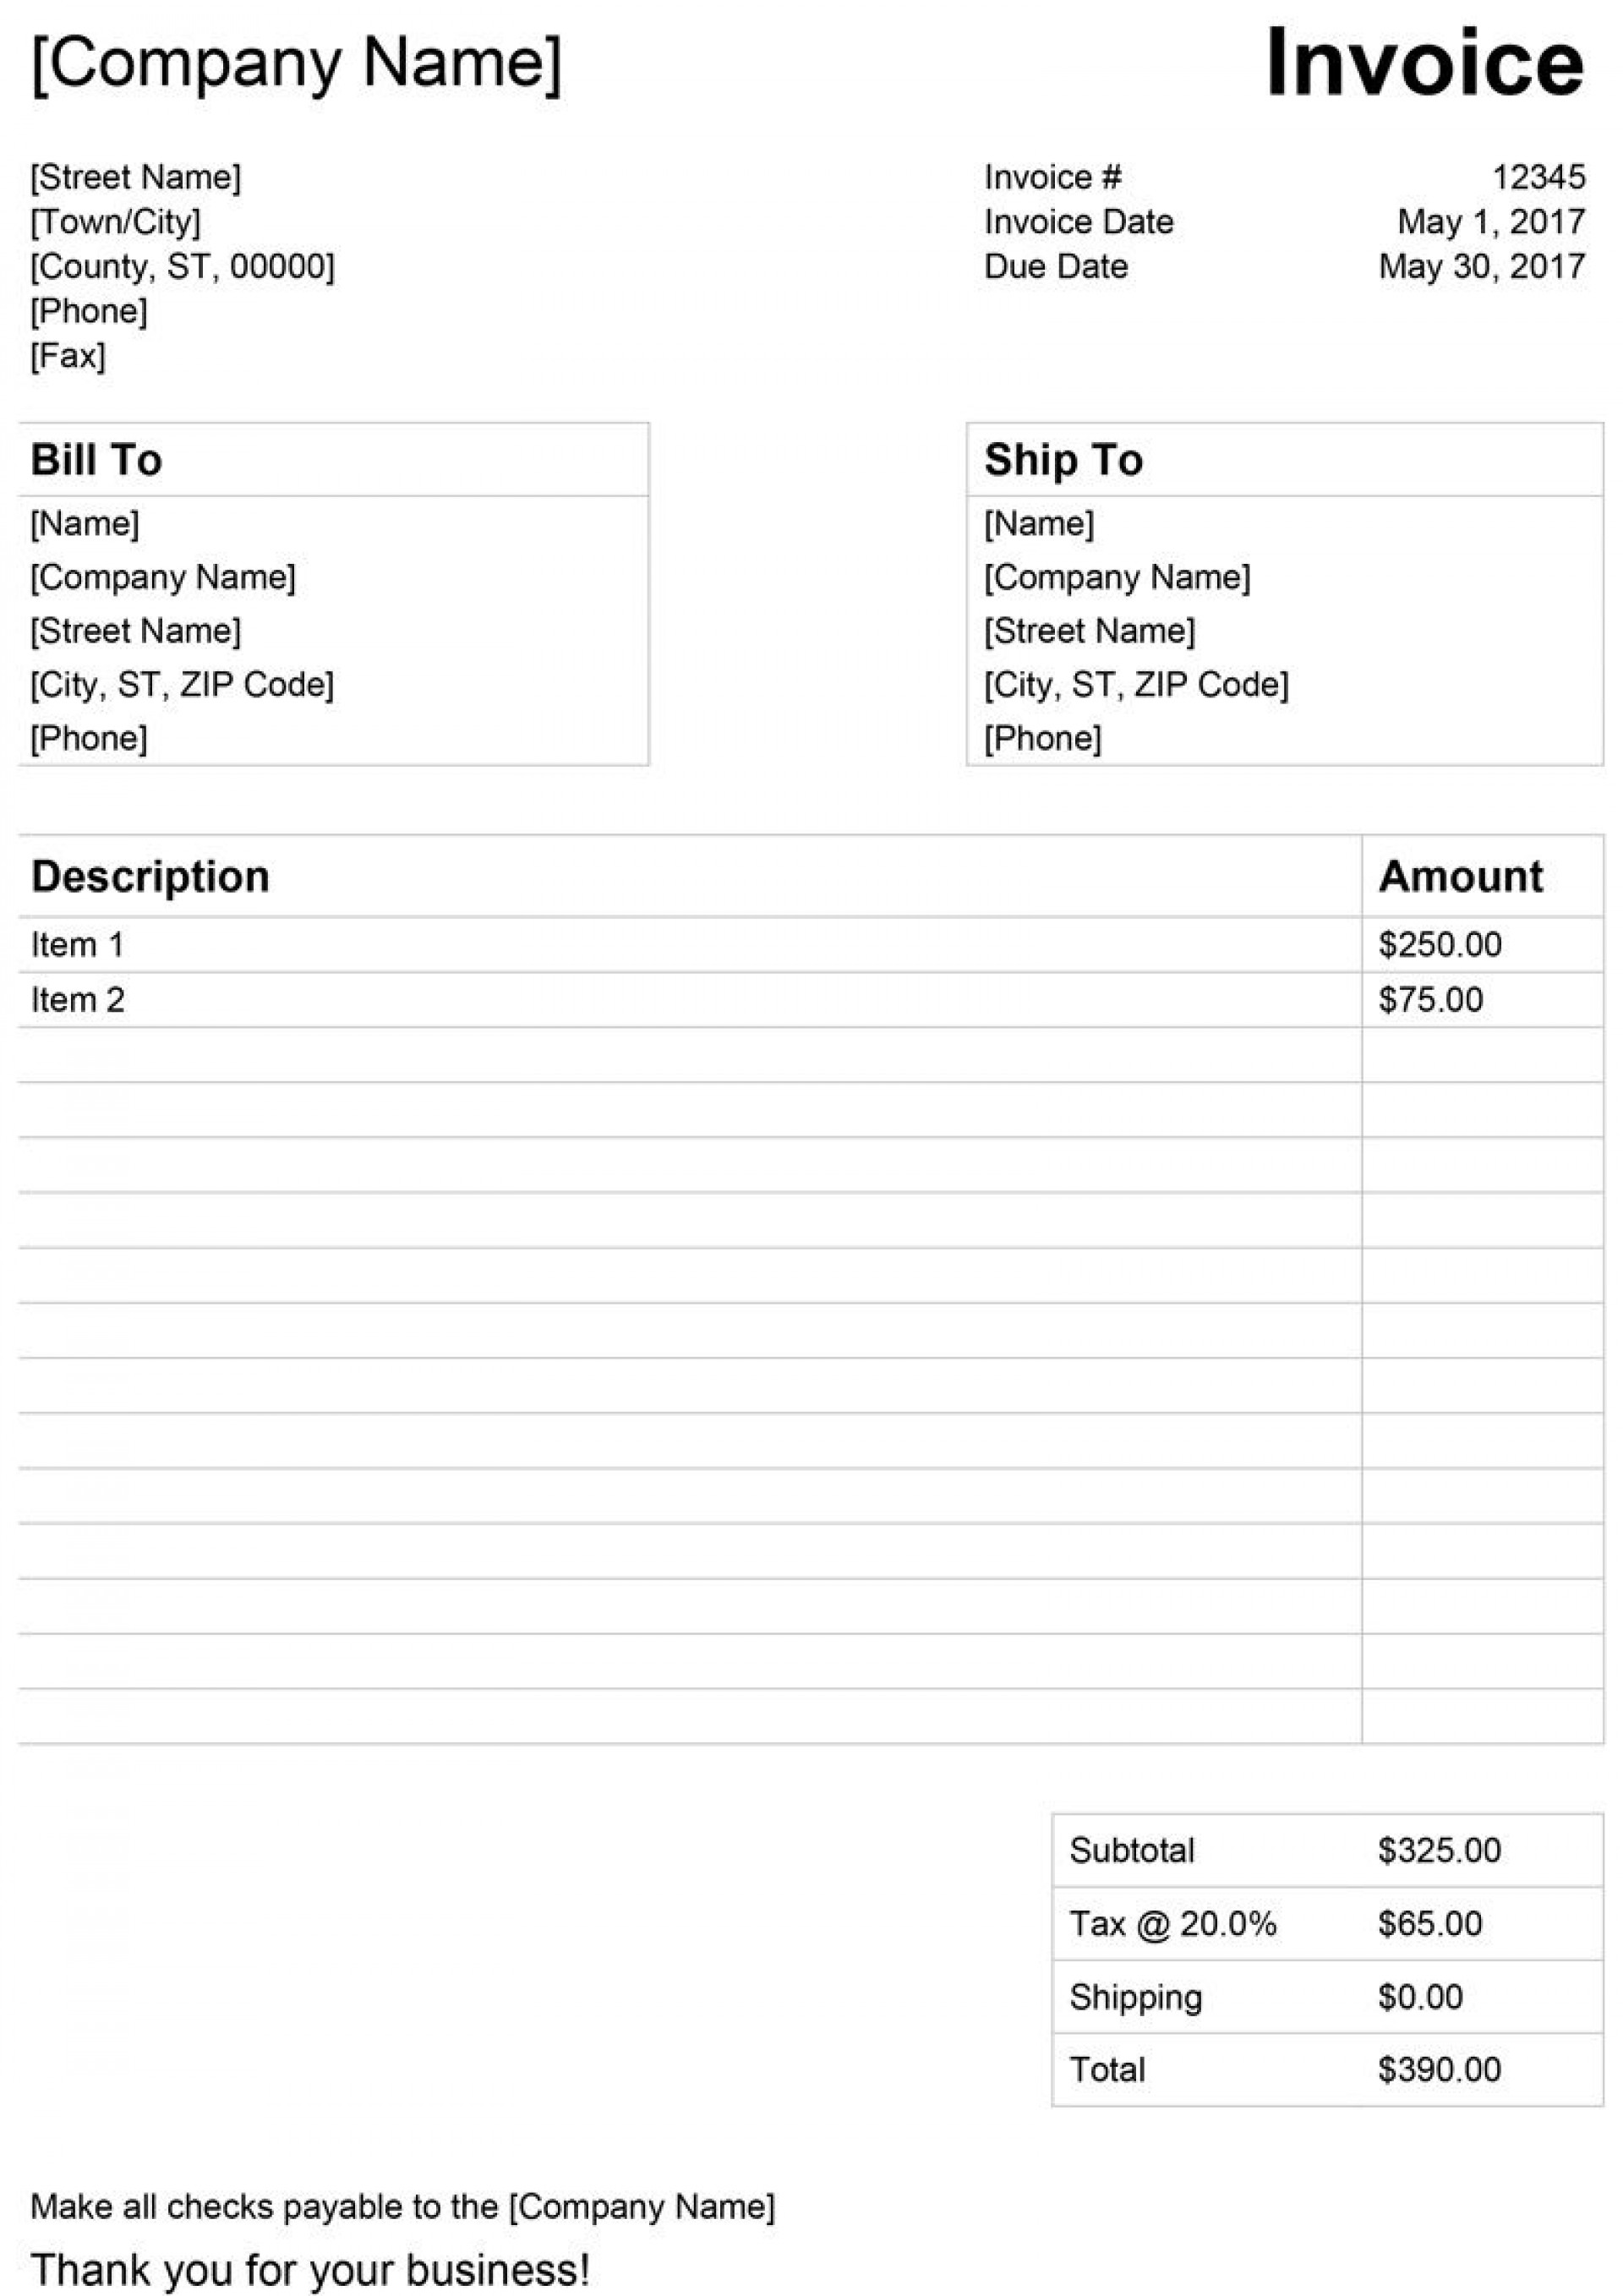 009 Excellent Microsoft Word Invoice Template Inspiration  Nz Download M Uk1920